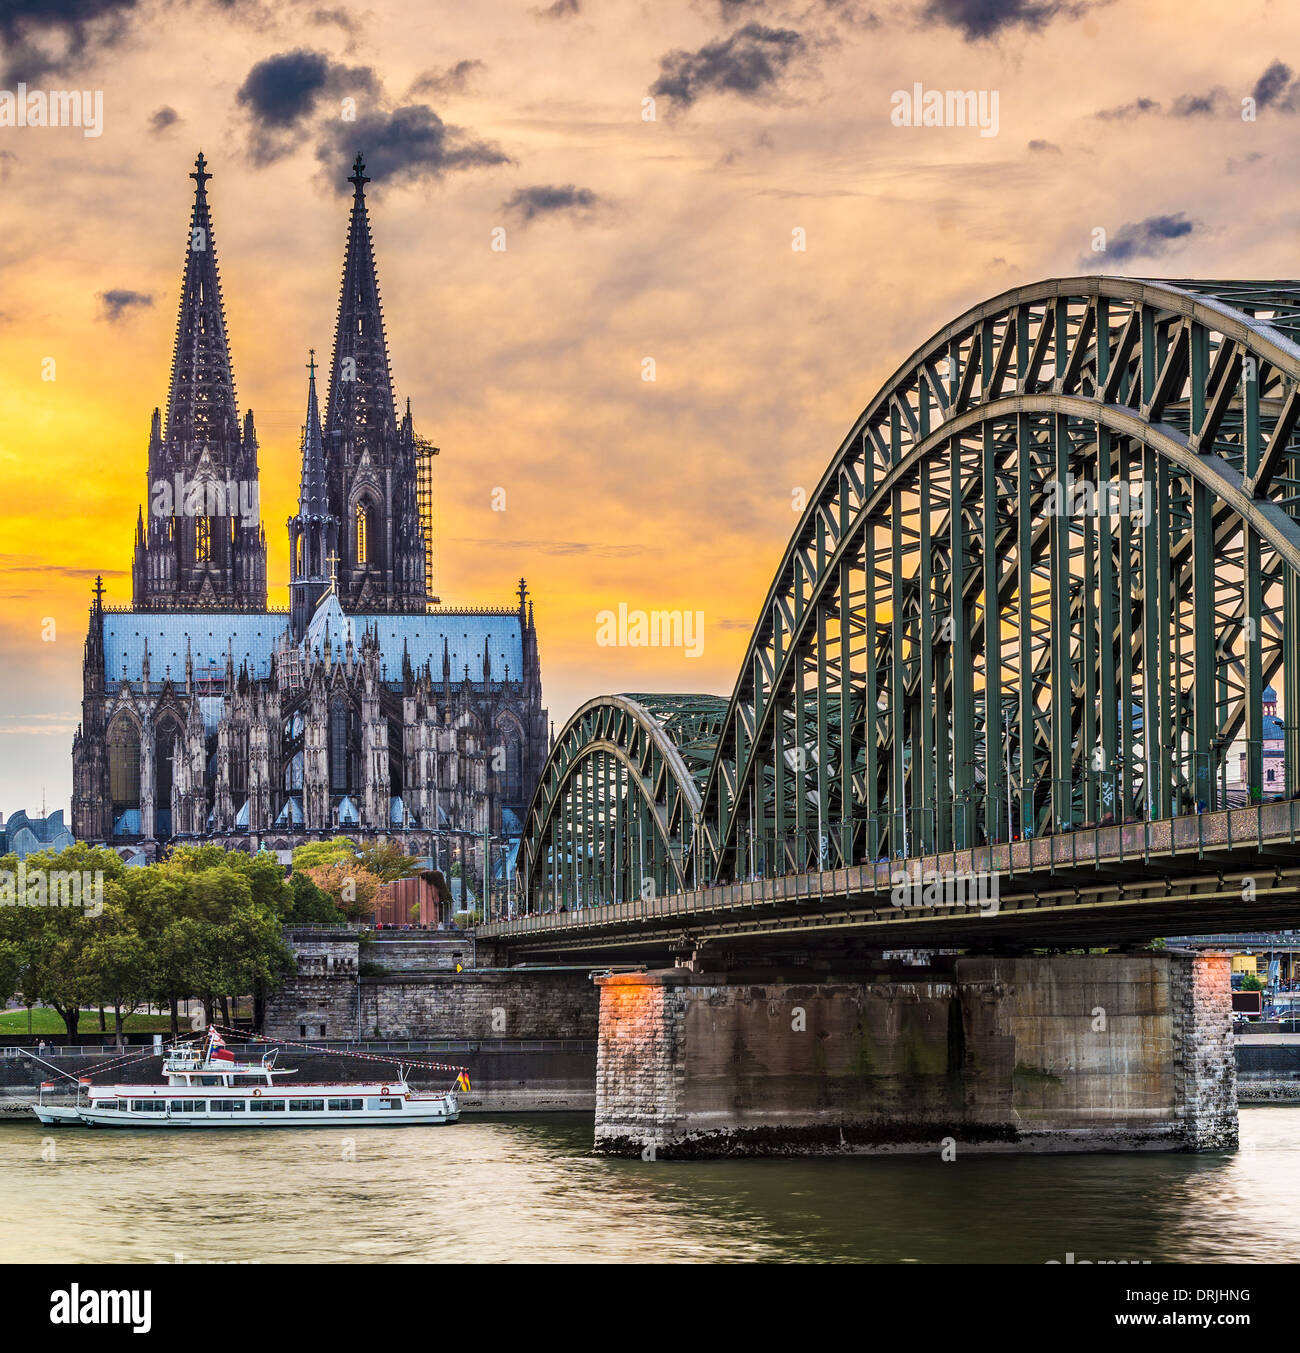 Cologne, Germany at the cathedral and bridge over the Rhine River. - Stock Image